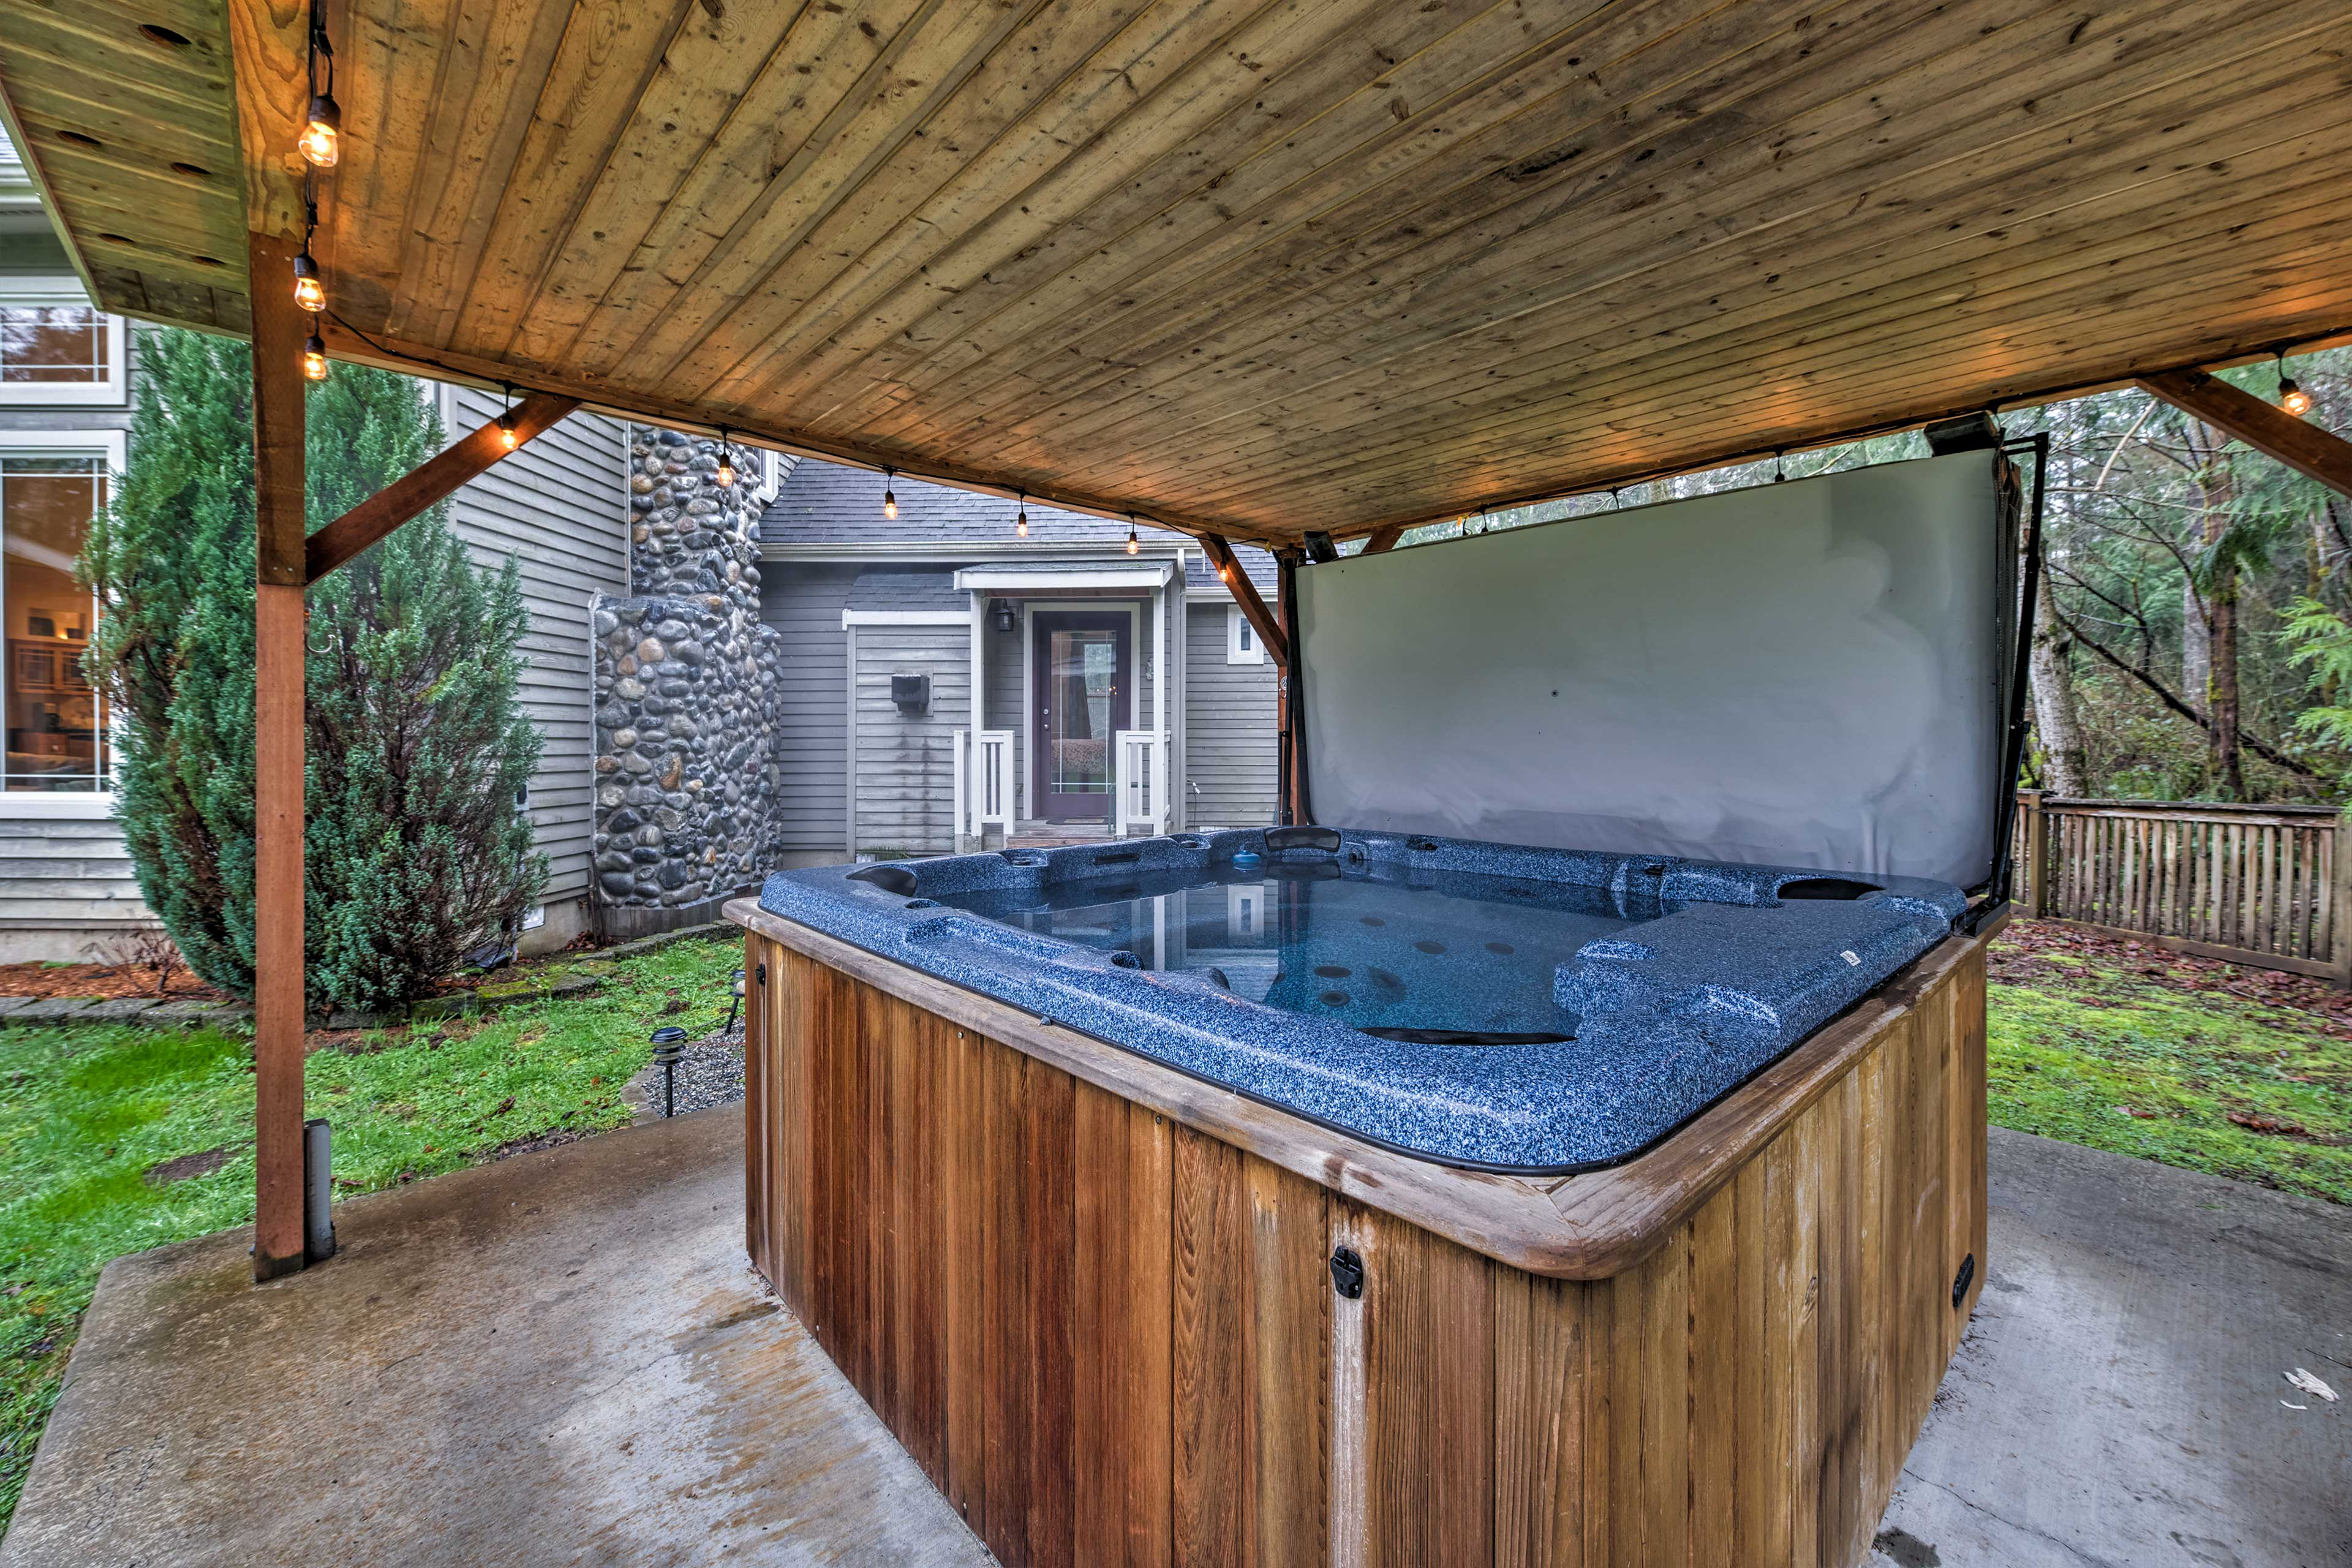 Soothe your sore muscles with a long soak in the hot tub.